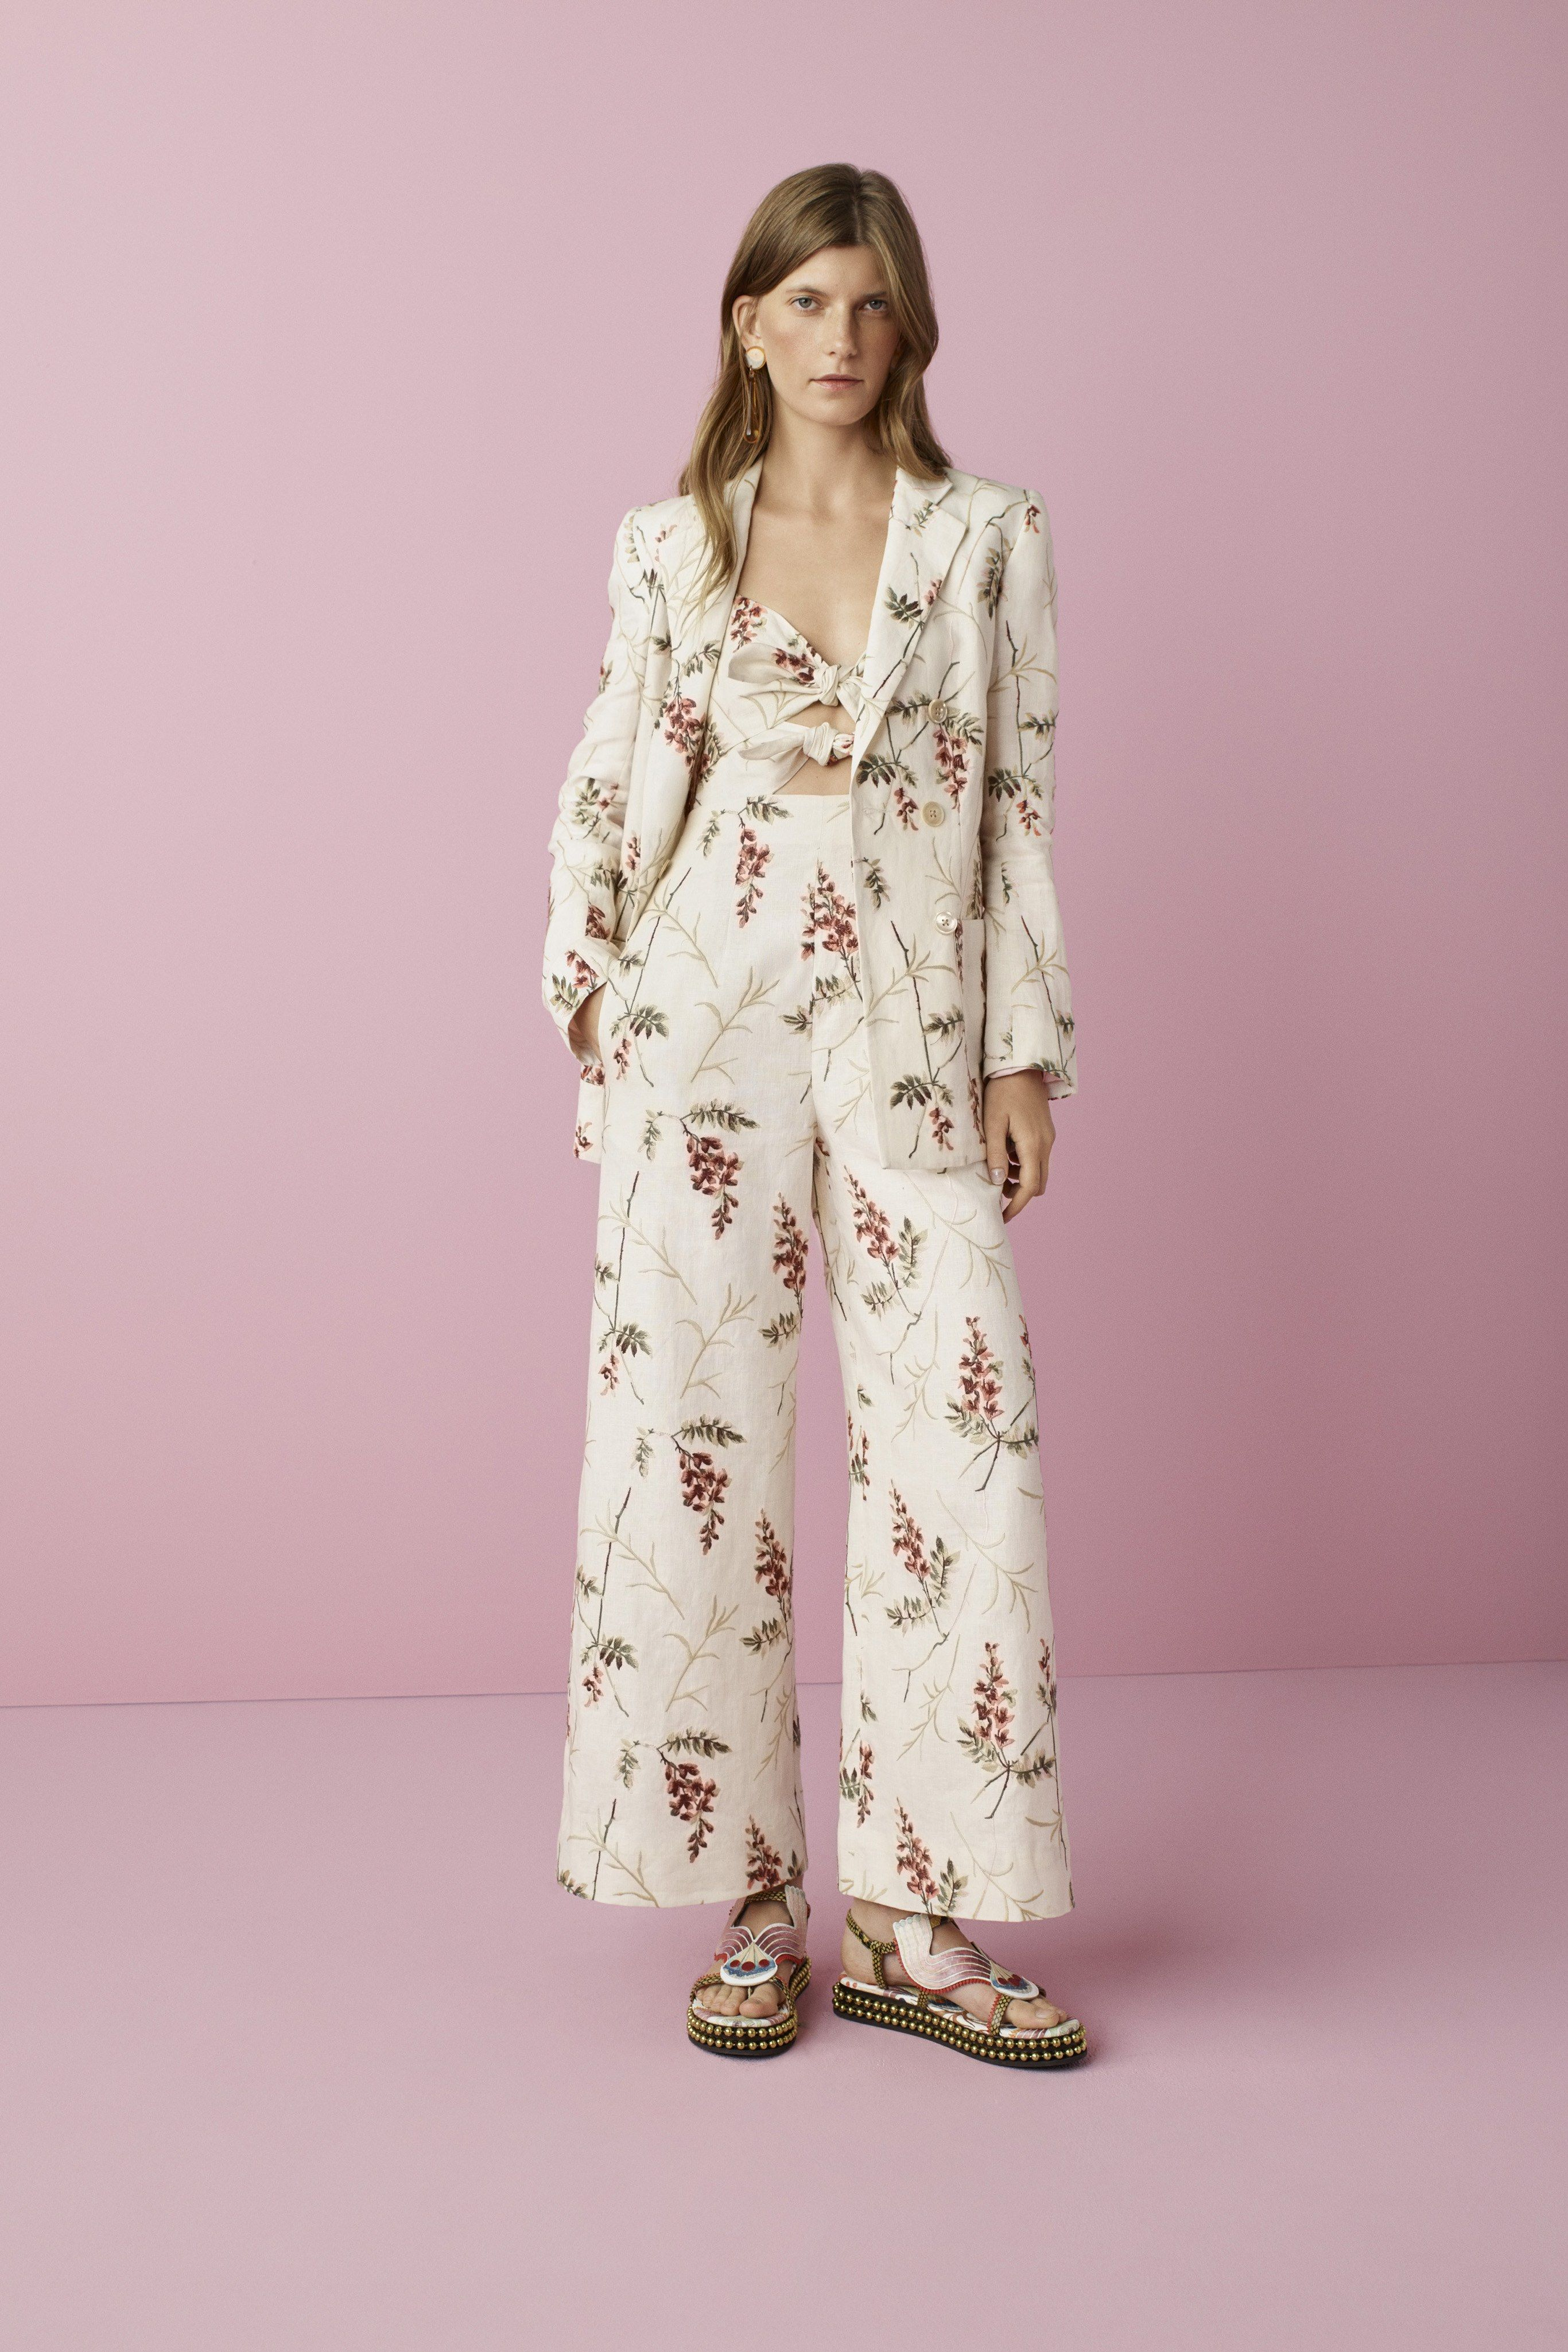 069c4a74cd Rebecca Taylor Spring 2019 Ready-to-Wear Collection - Vogue  clothes   beautifulclothes  fashion  apparel  fashiontrends  style  stylewatch ...